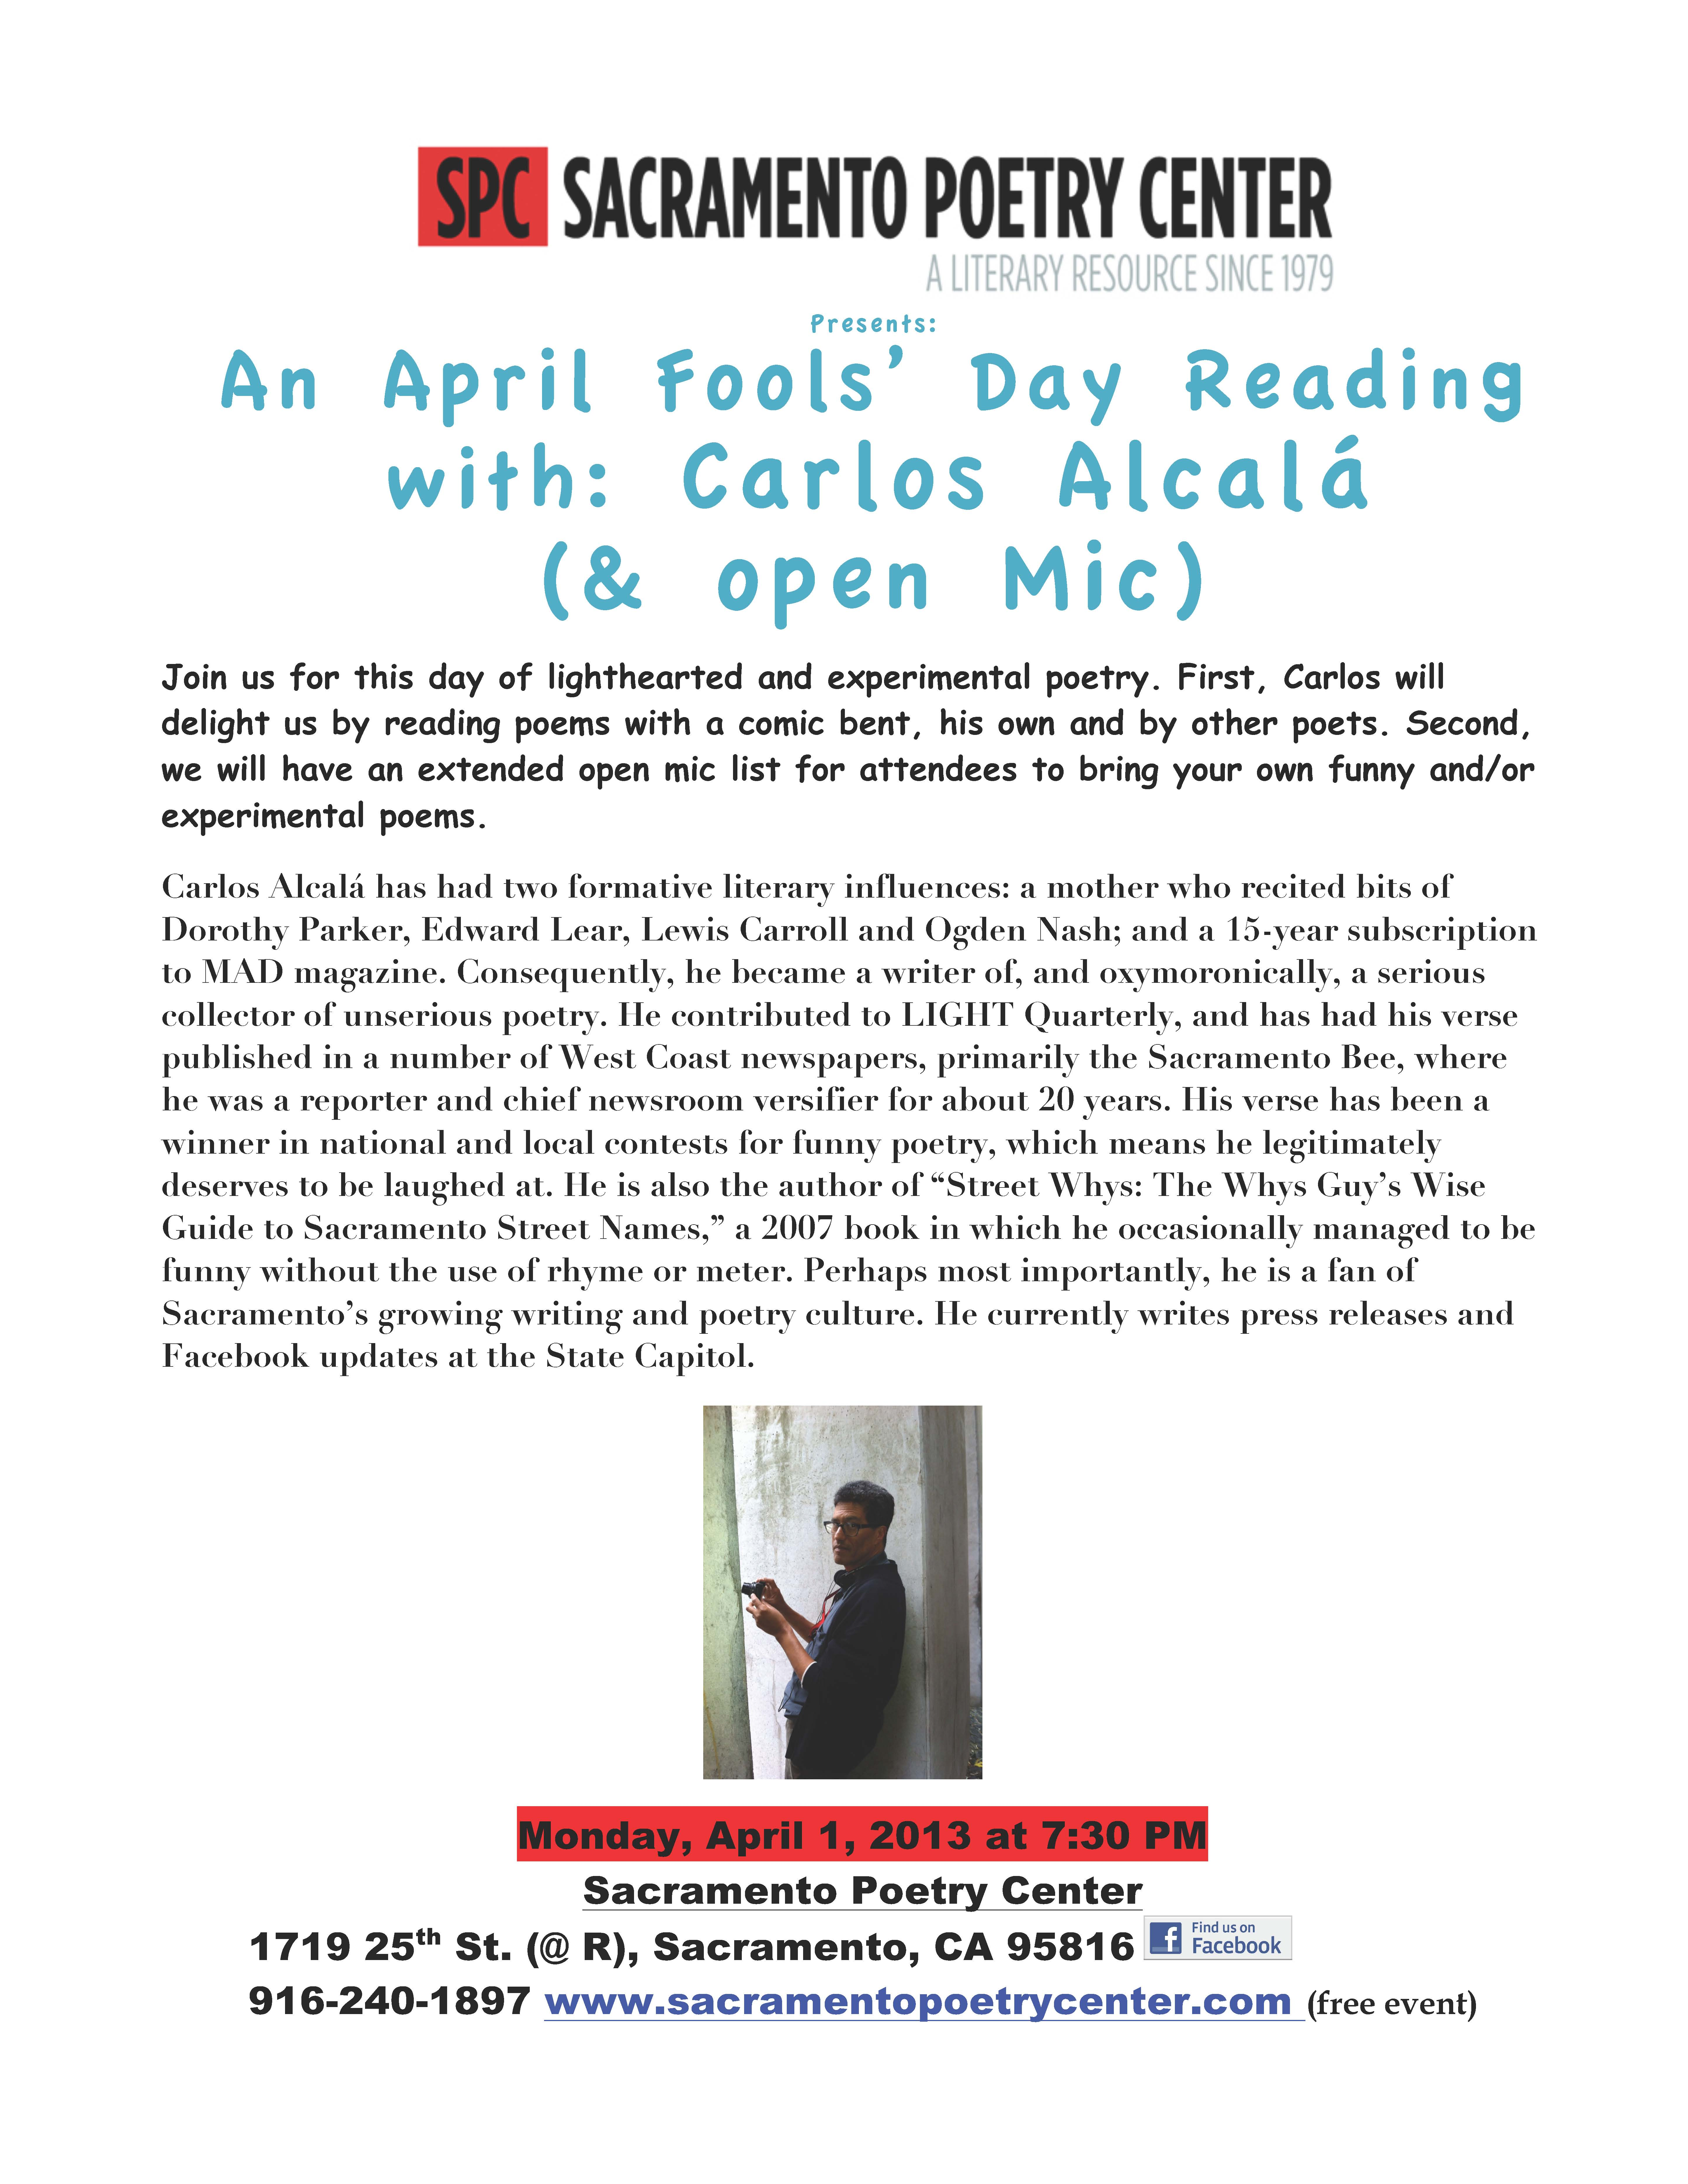 An April Fools Day Reading With Carlos Alcala